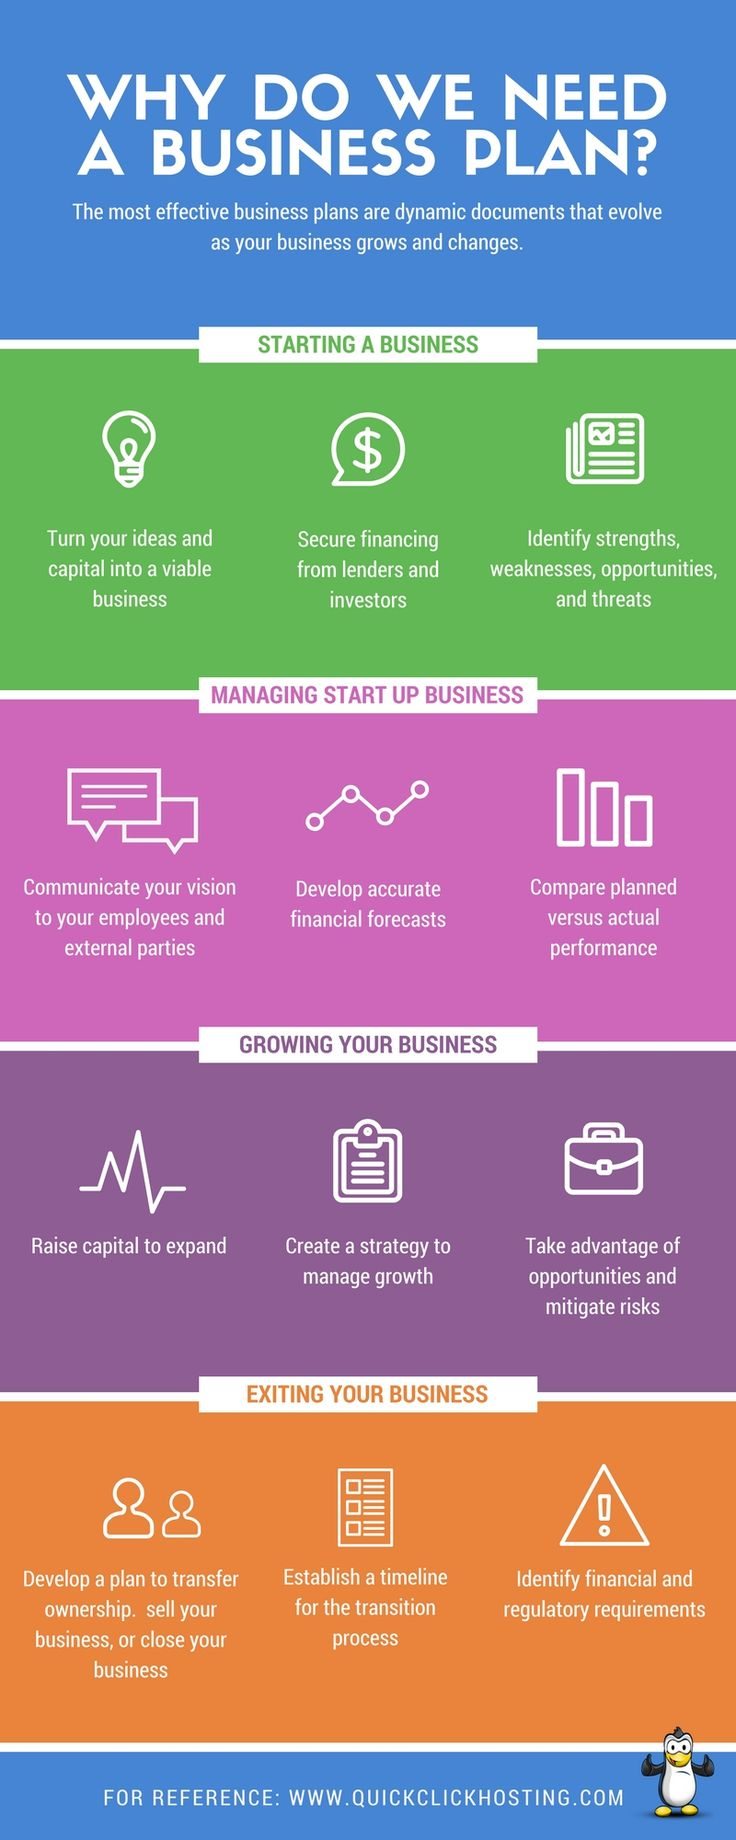 Looking to start a business. You need a business plan. We